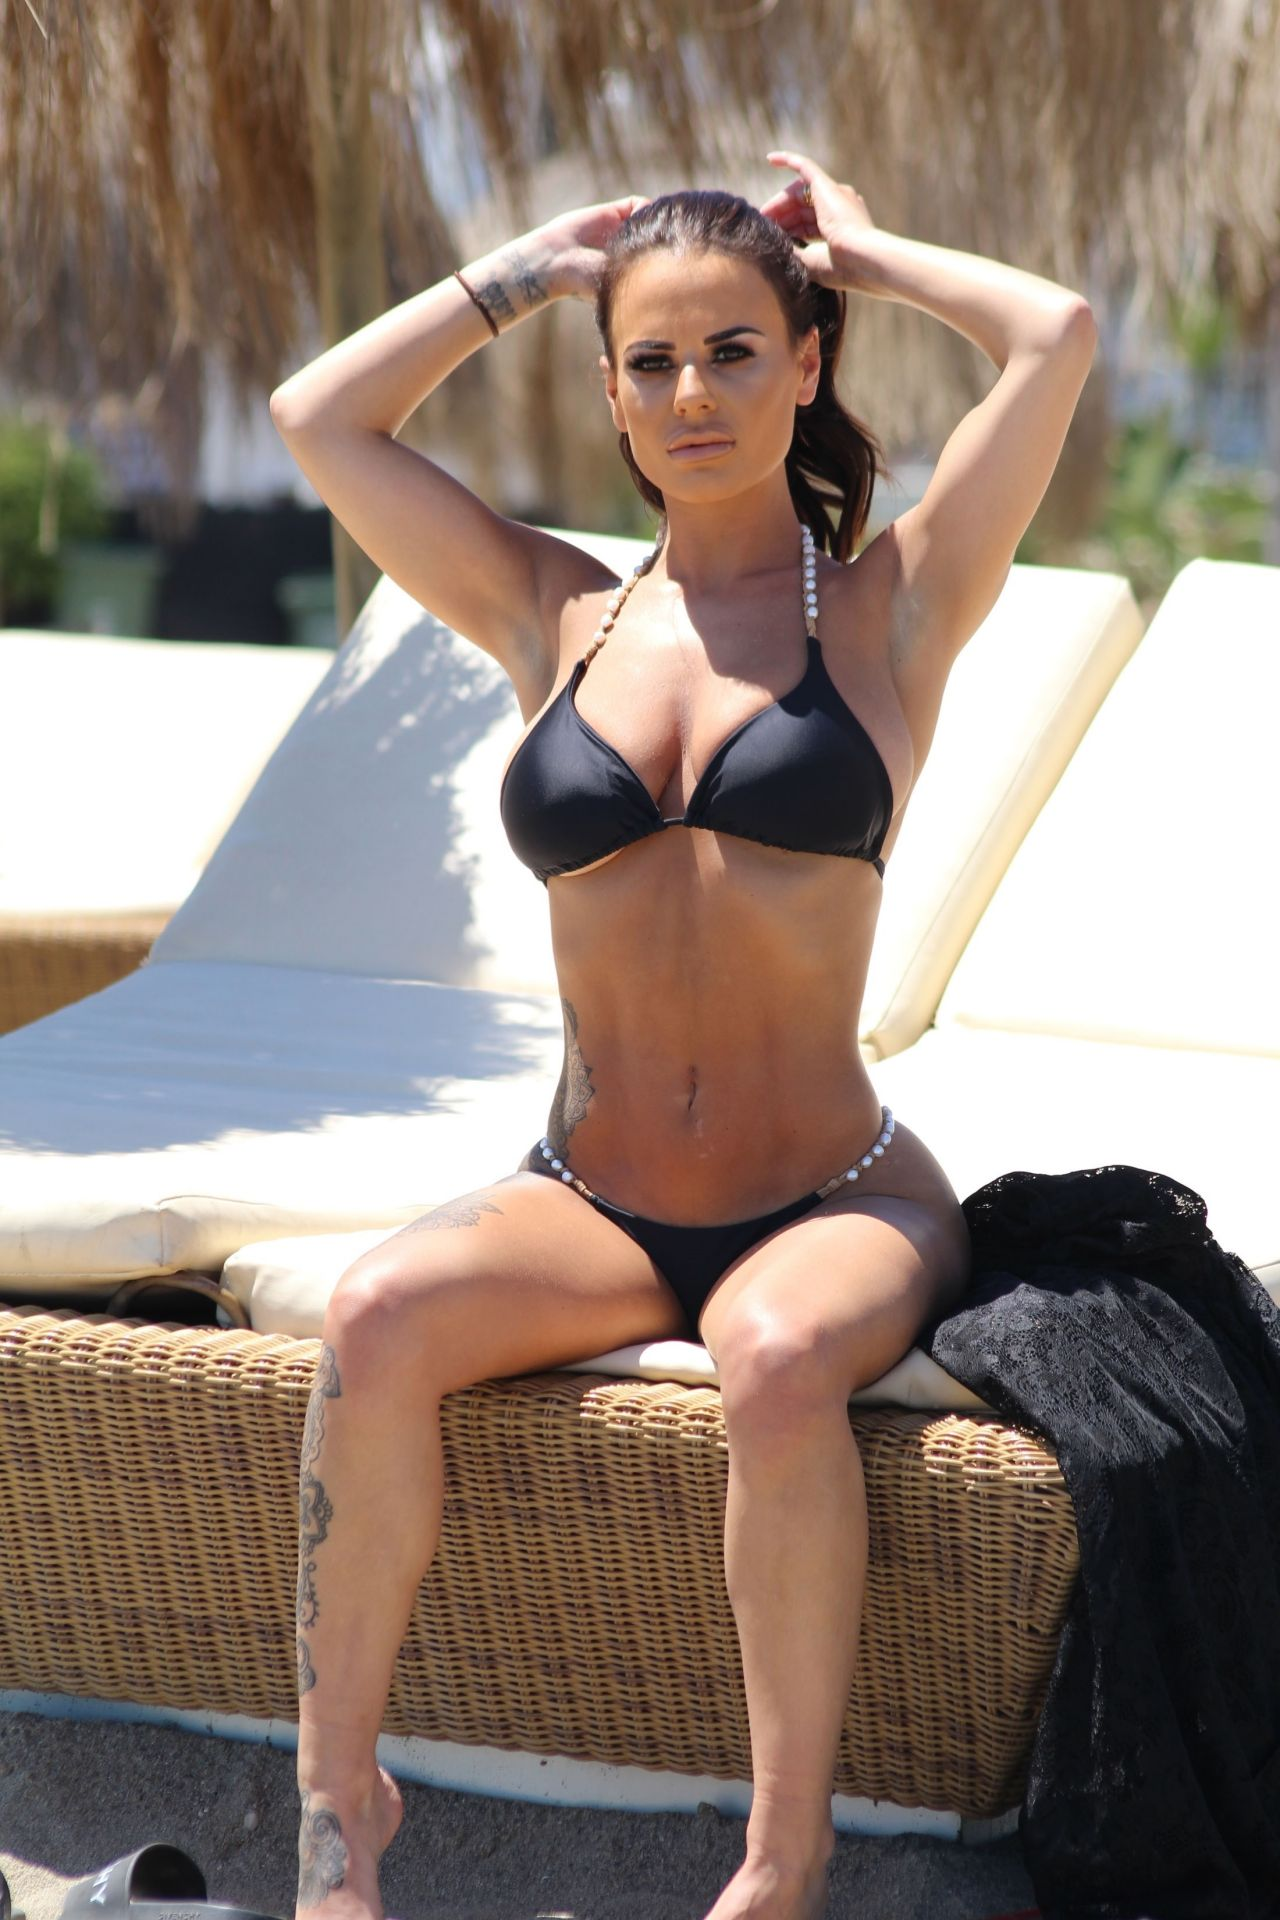 Bikini Chantelle Connelly naked (38 photos), Topless, Bikini, Instagram, butt 2006